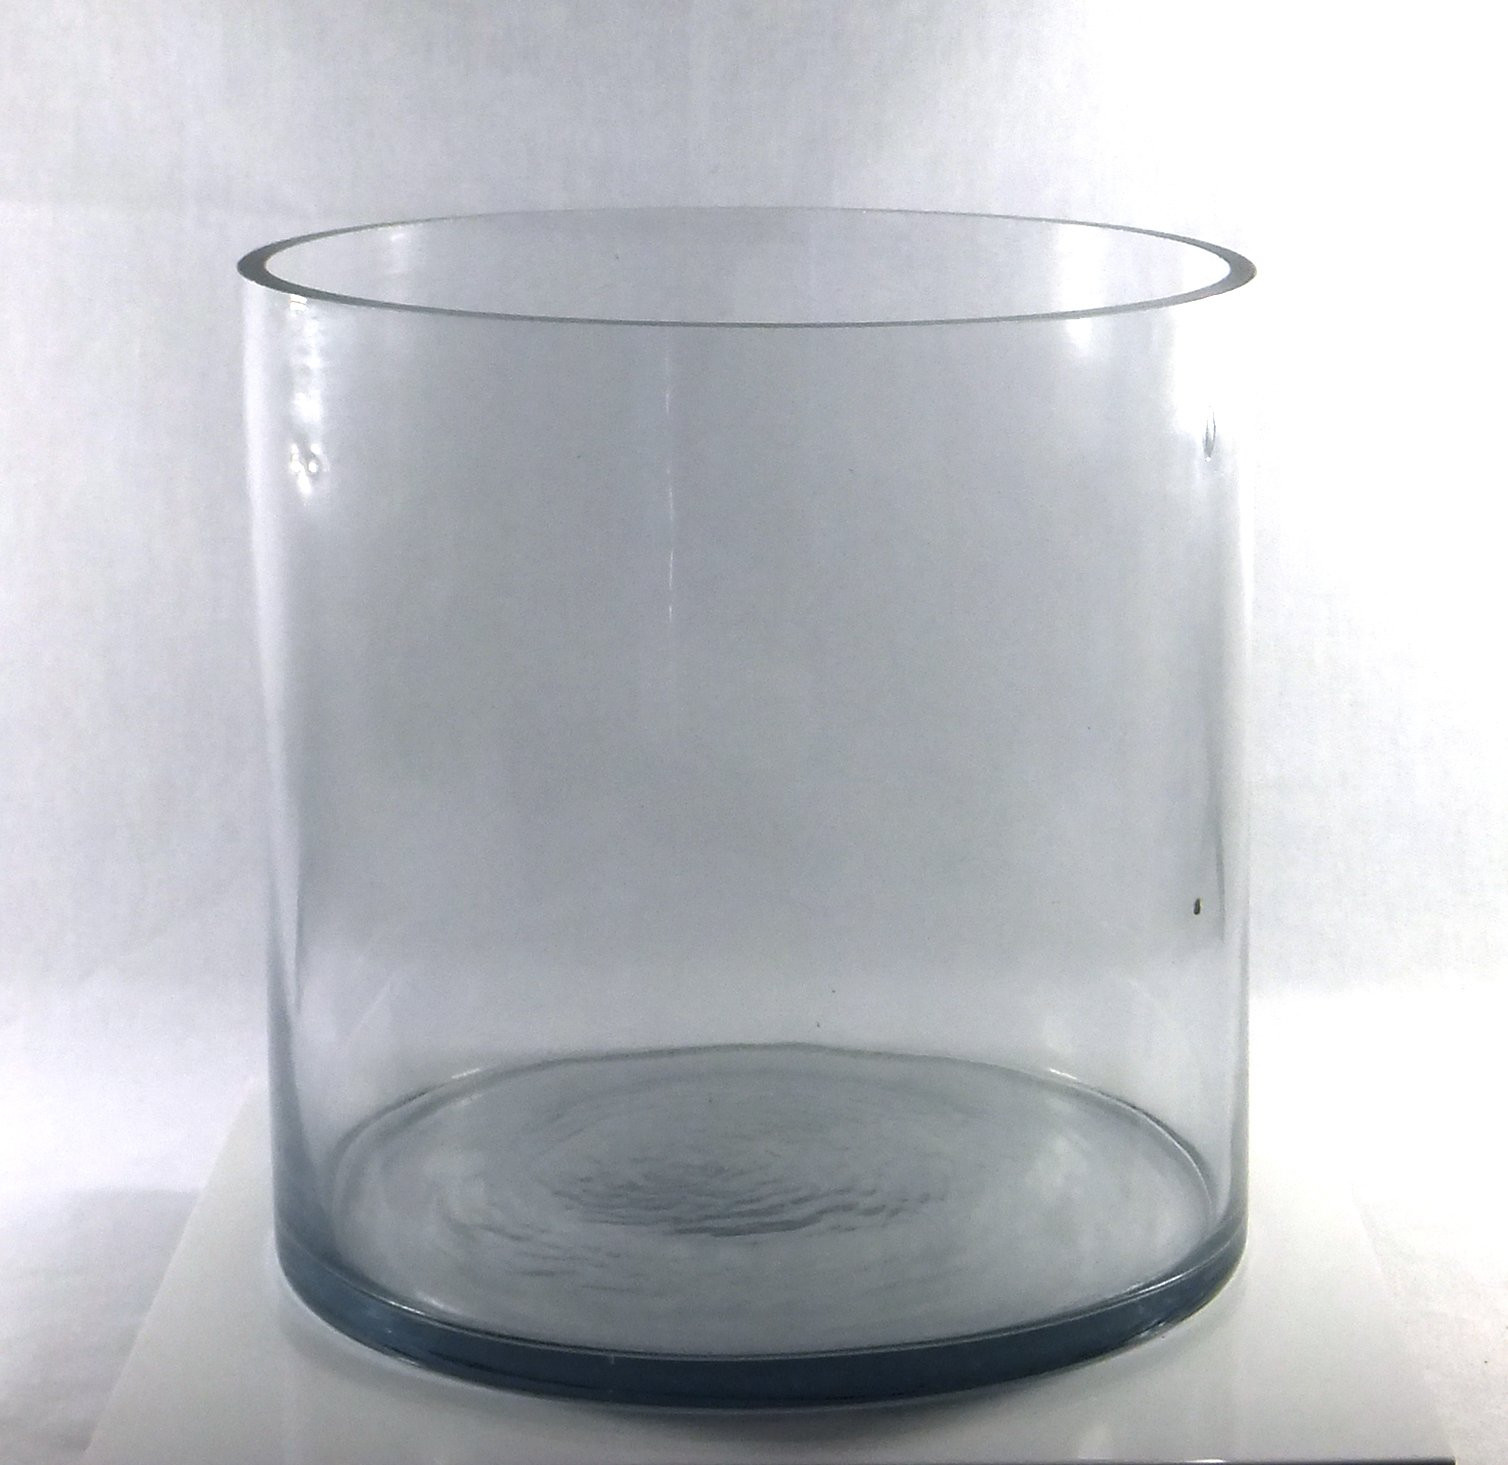 old clear glass vases of buy 8 inch round large glass vase 8 clear cylinder oversize within 8 inch round large glass vase 8 clear cylinder oversize centerpiece 8x8